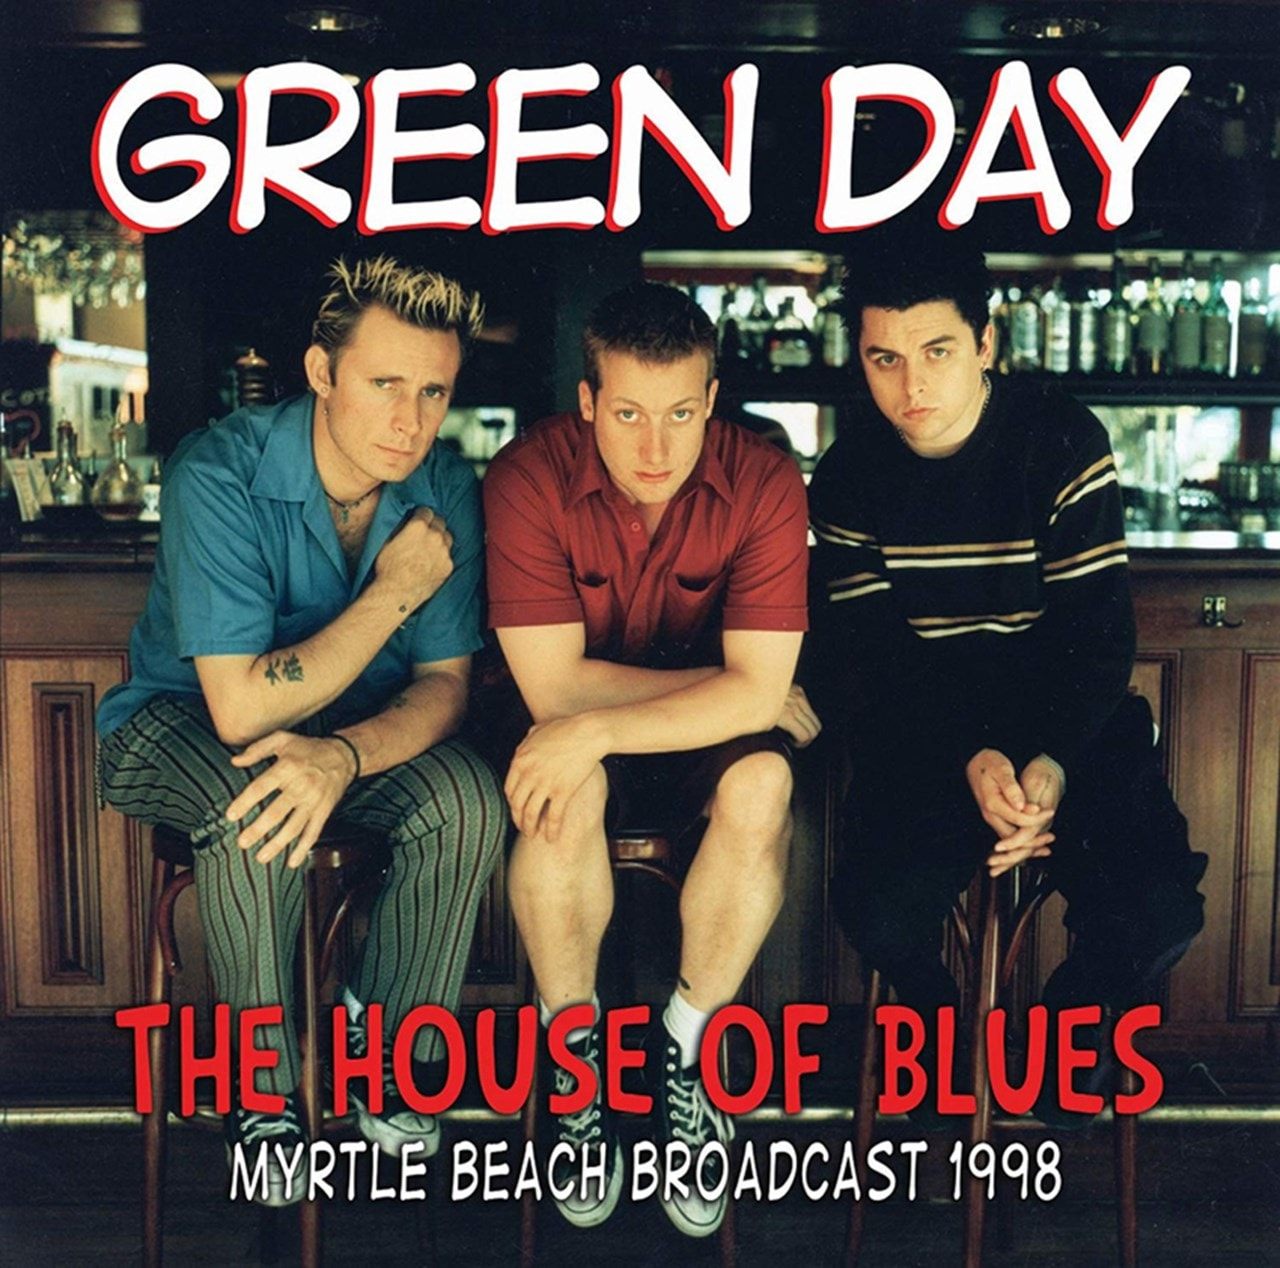 House of Blues: Myrtle Beach Broadcast 1998 - 1